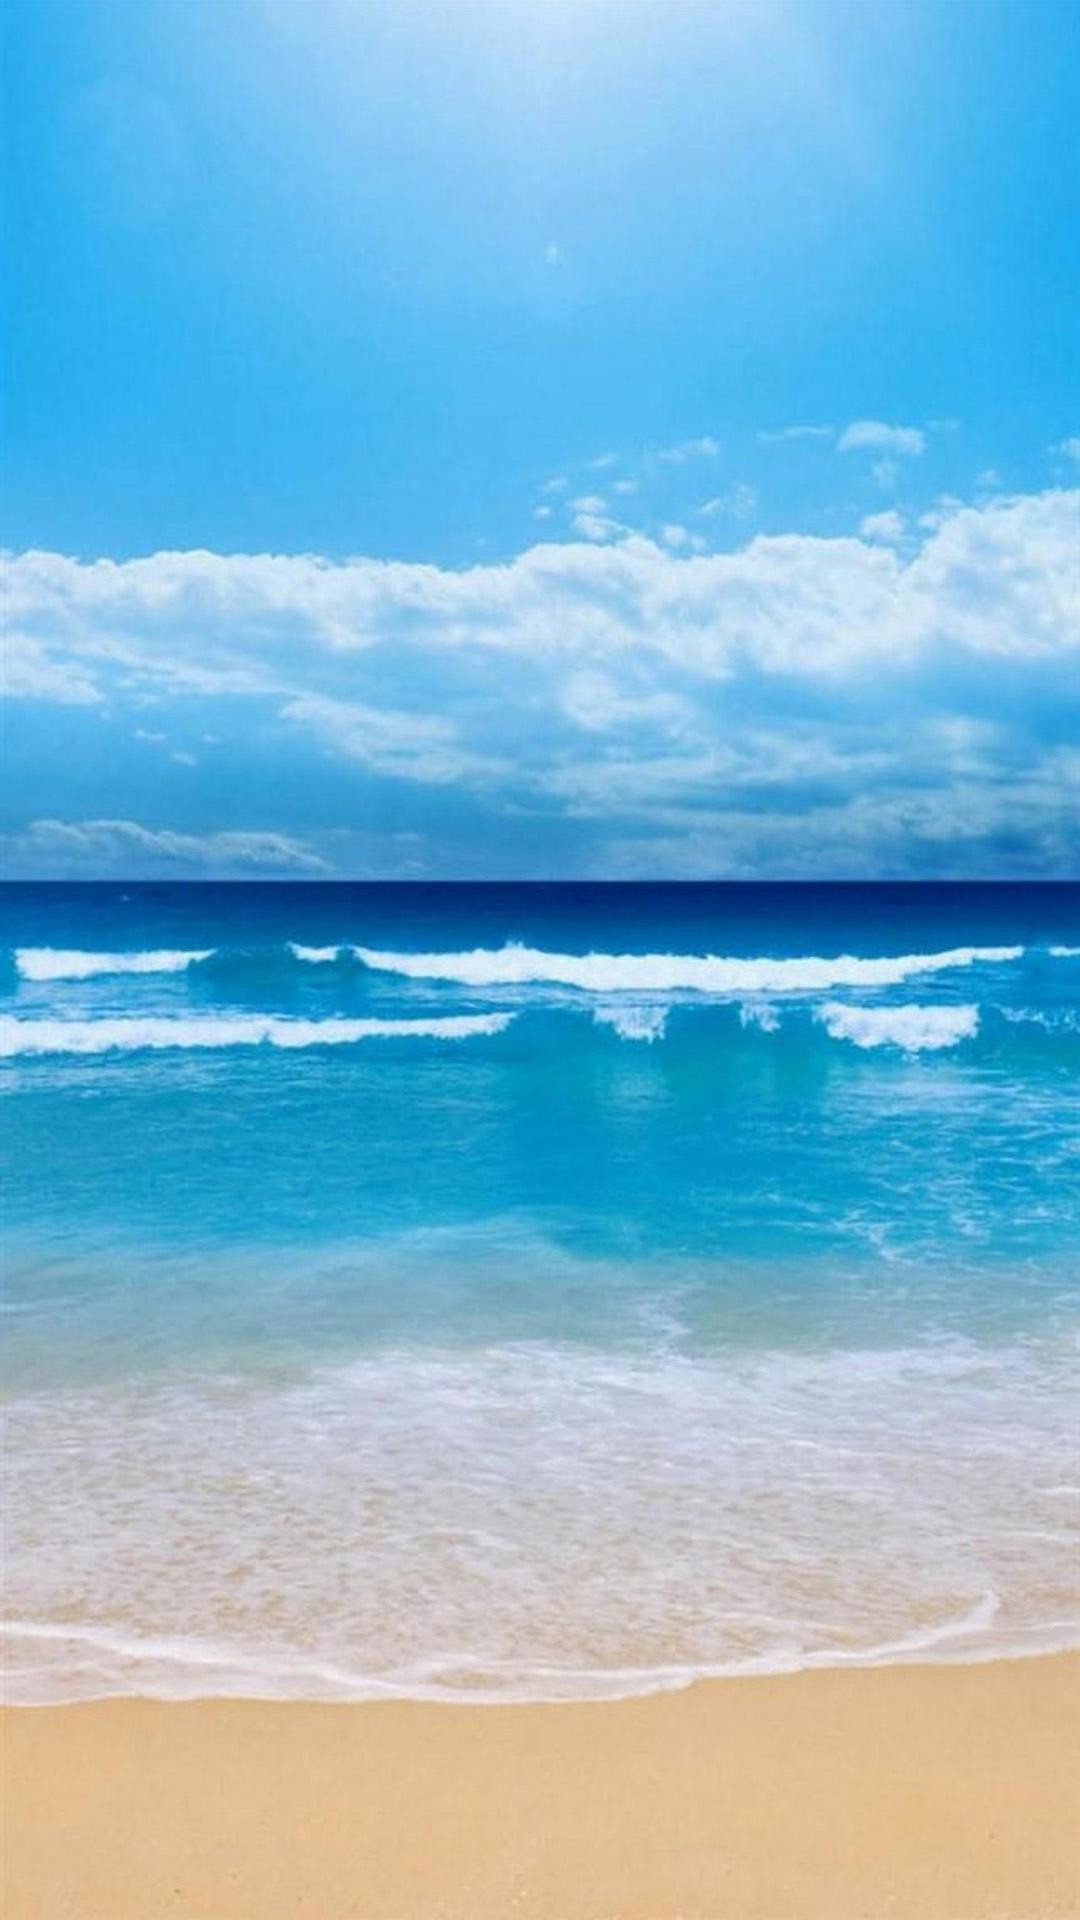 Download-Beach-iPhone-Backgrounds-1